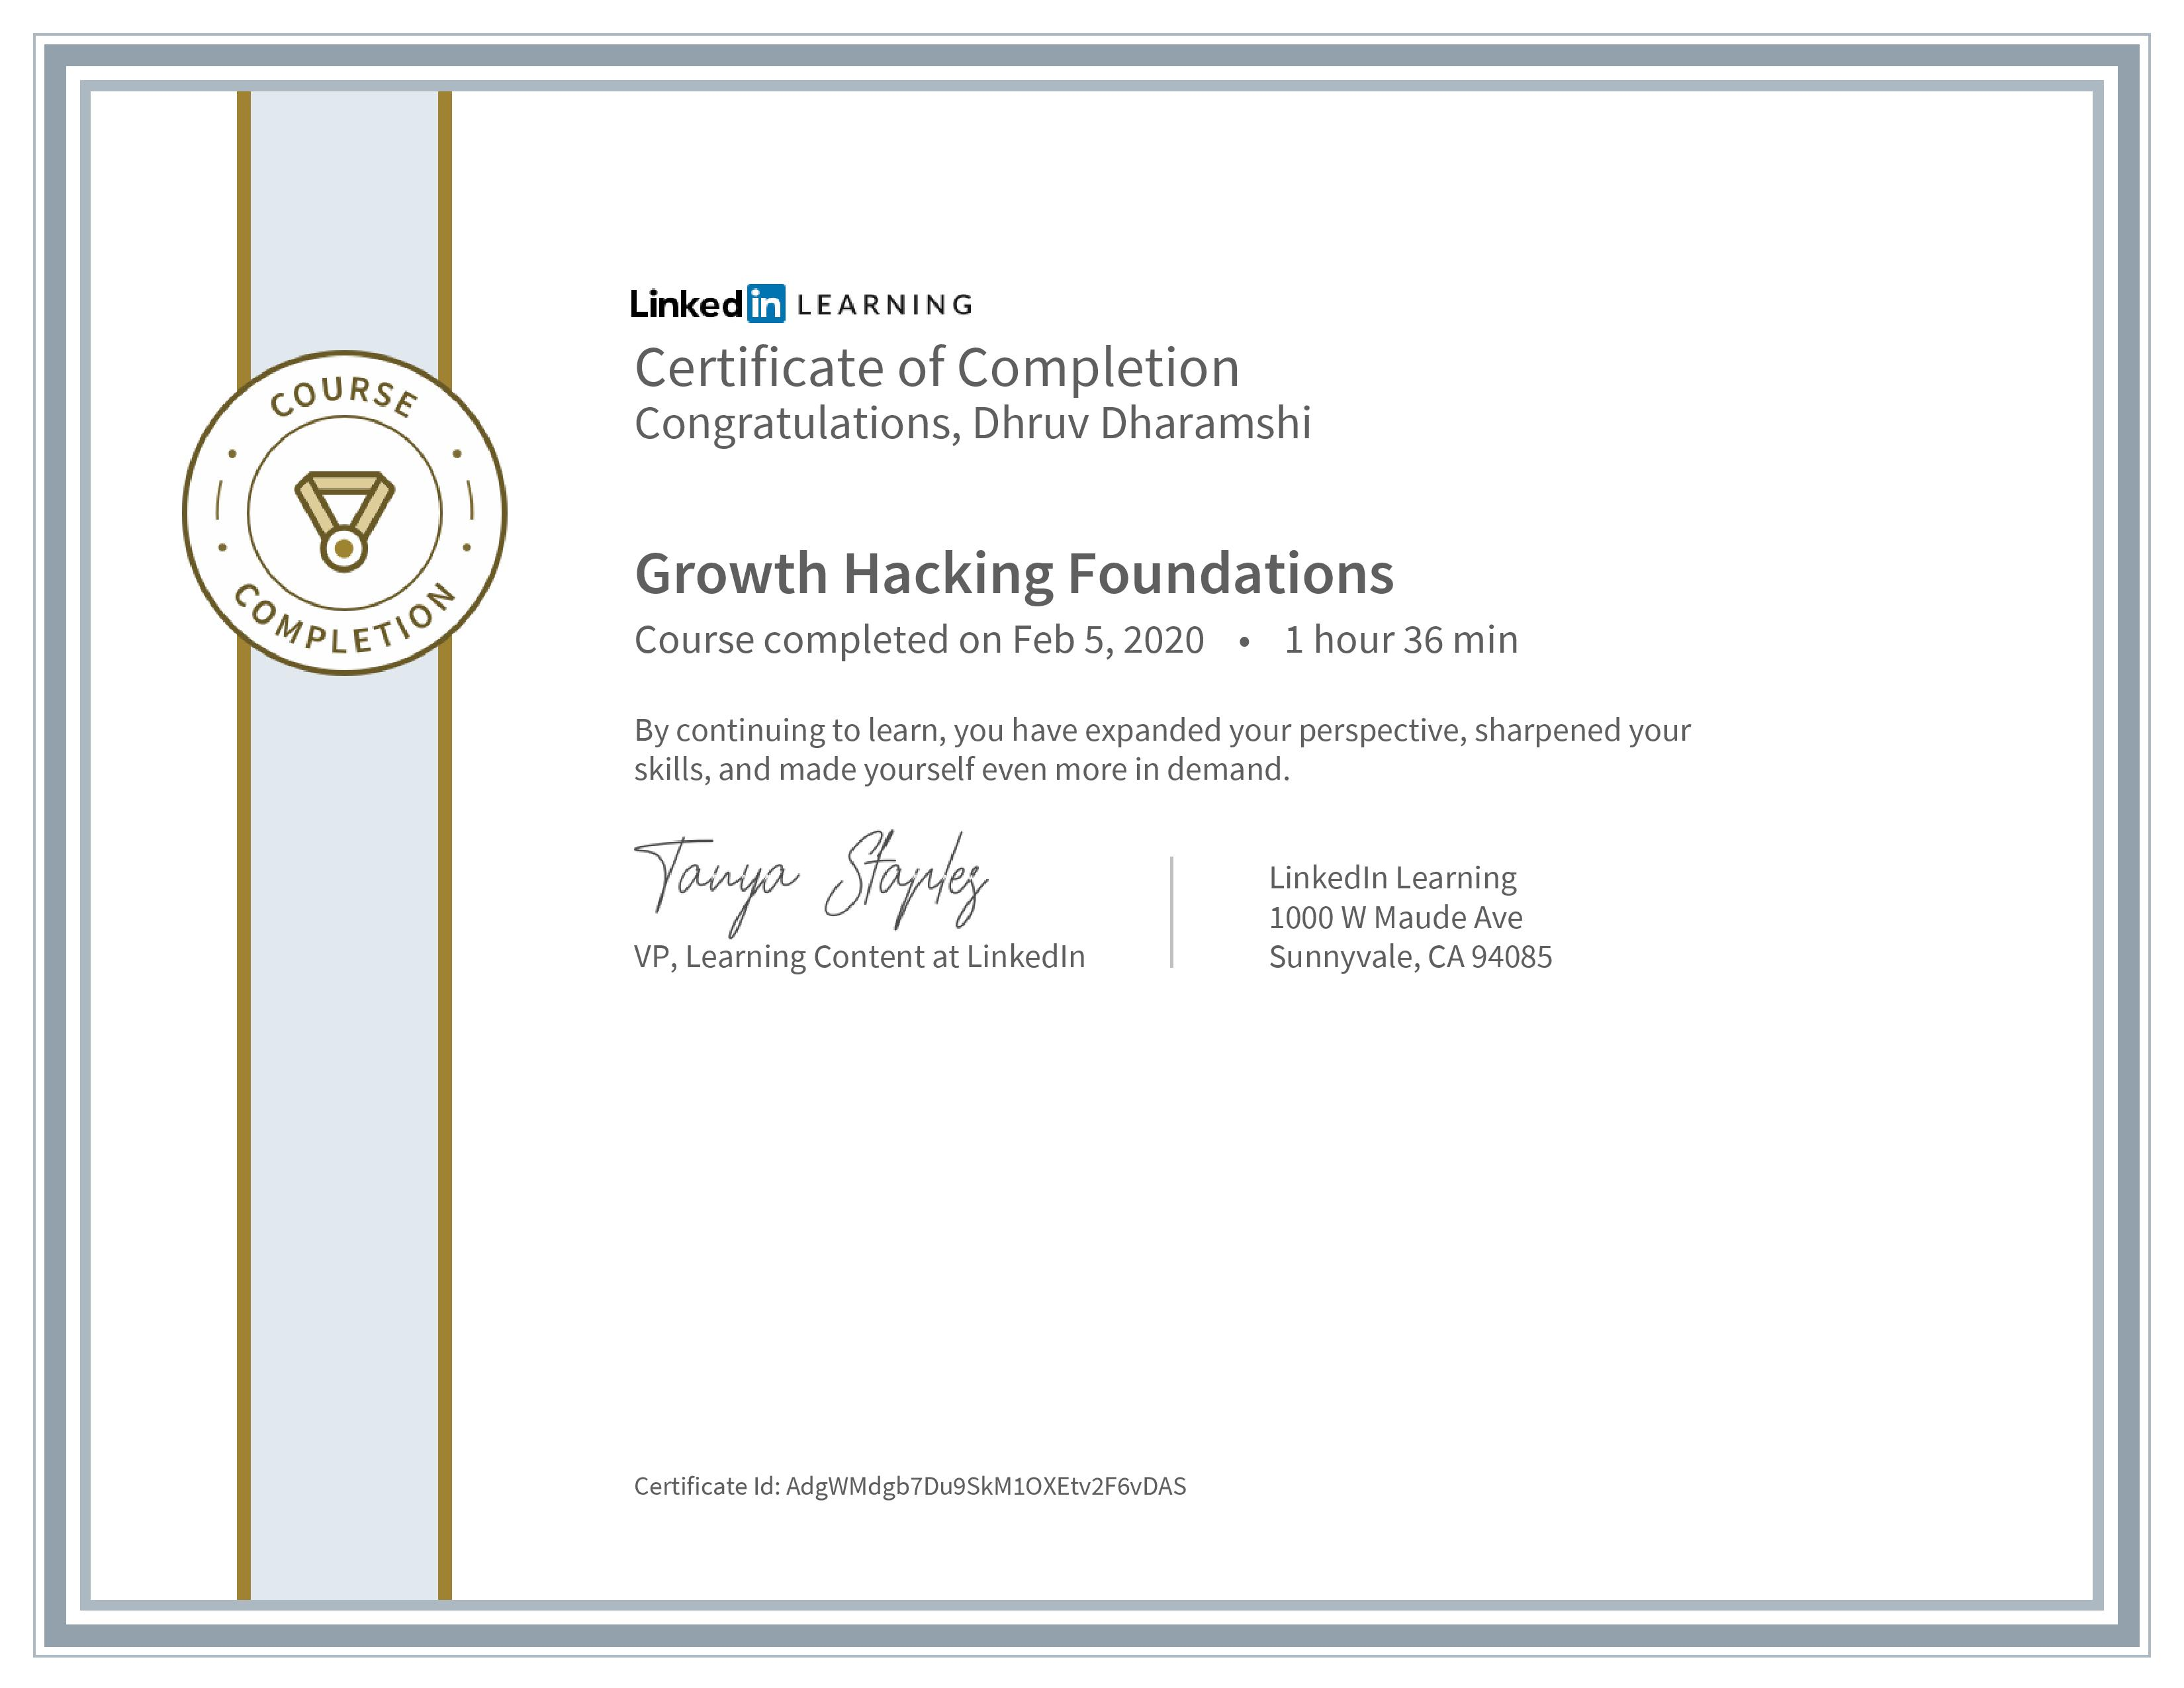 Growth Hacking Foundations